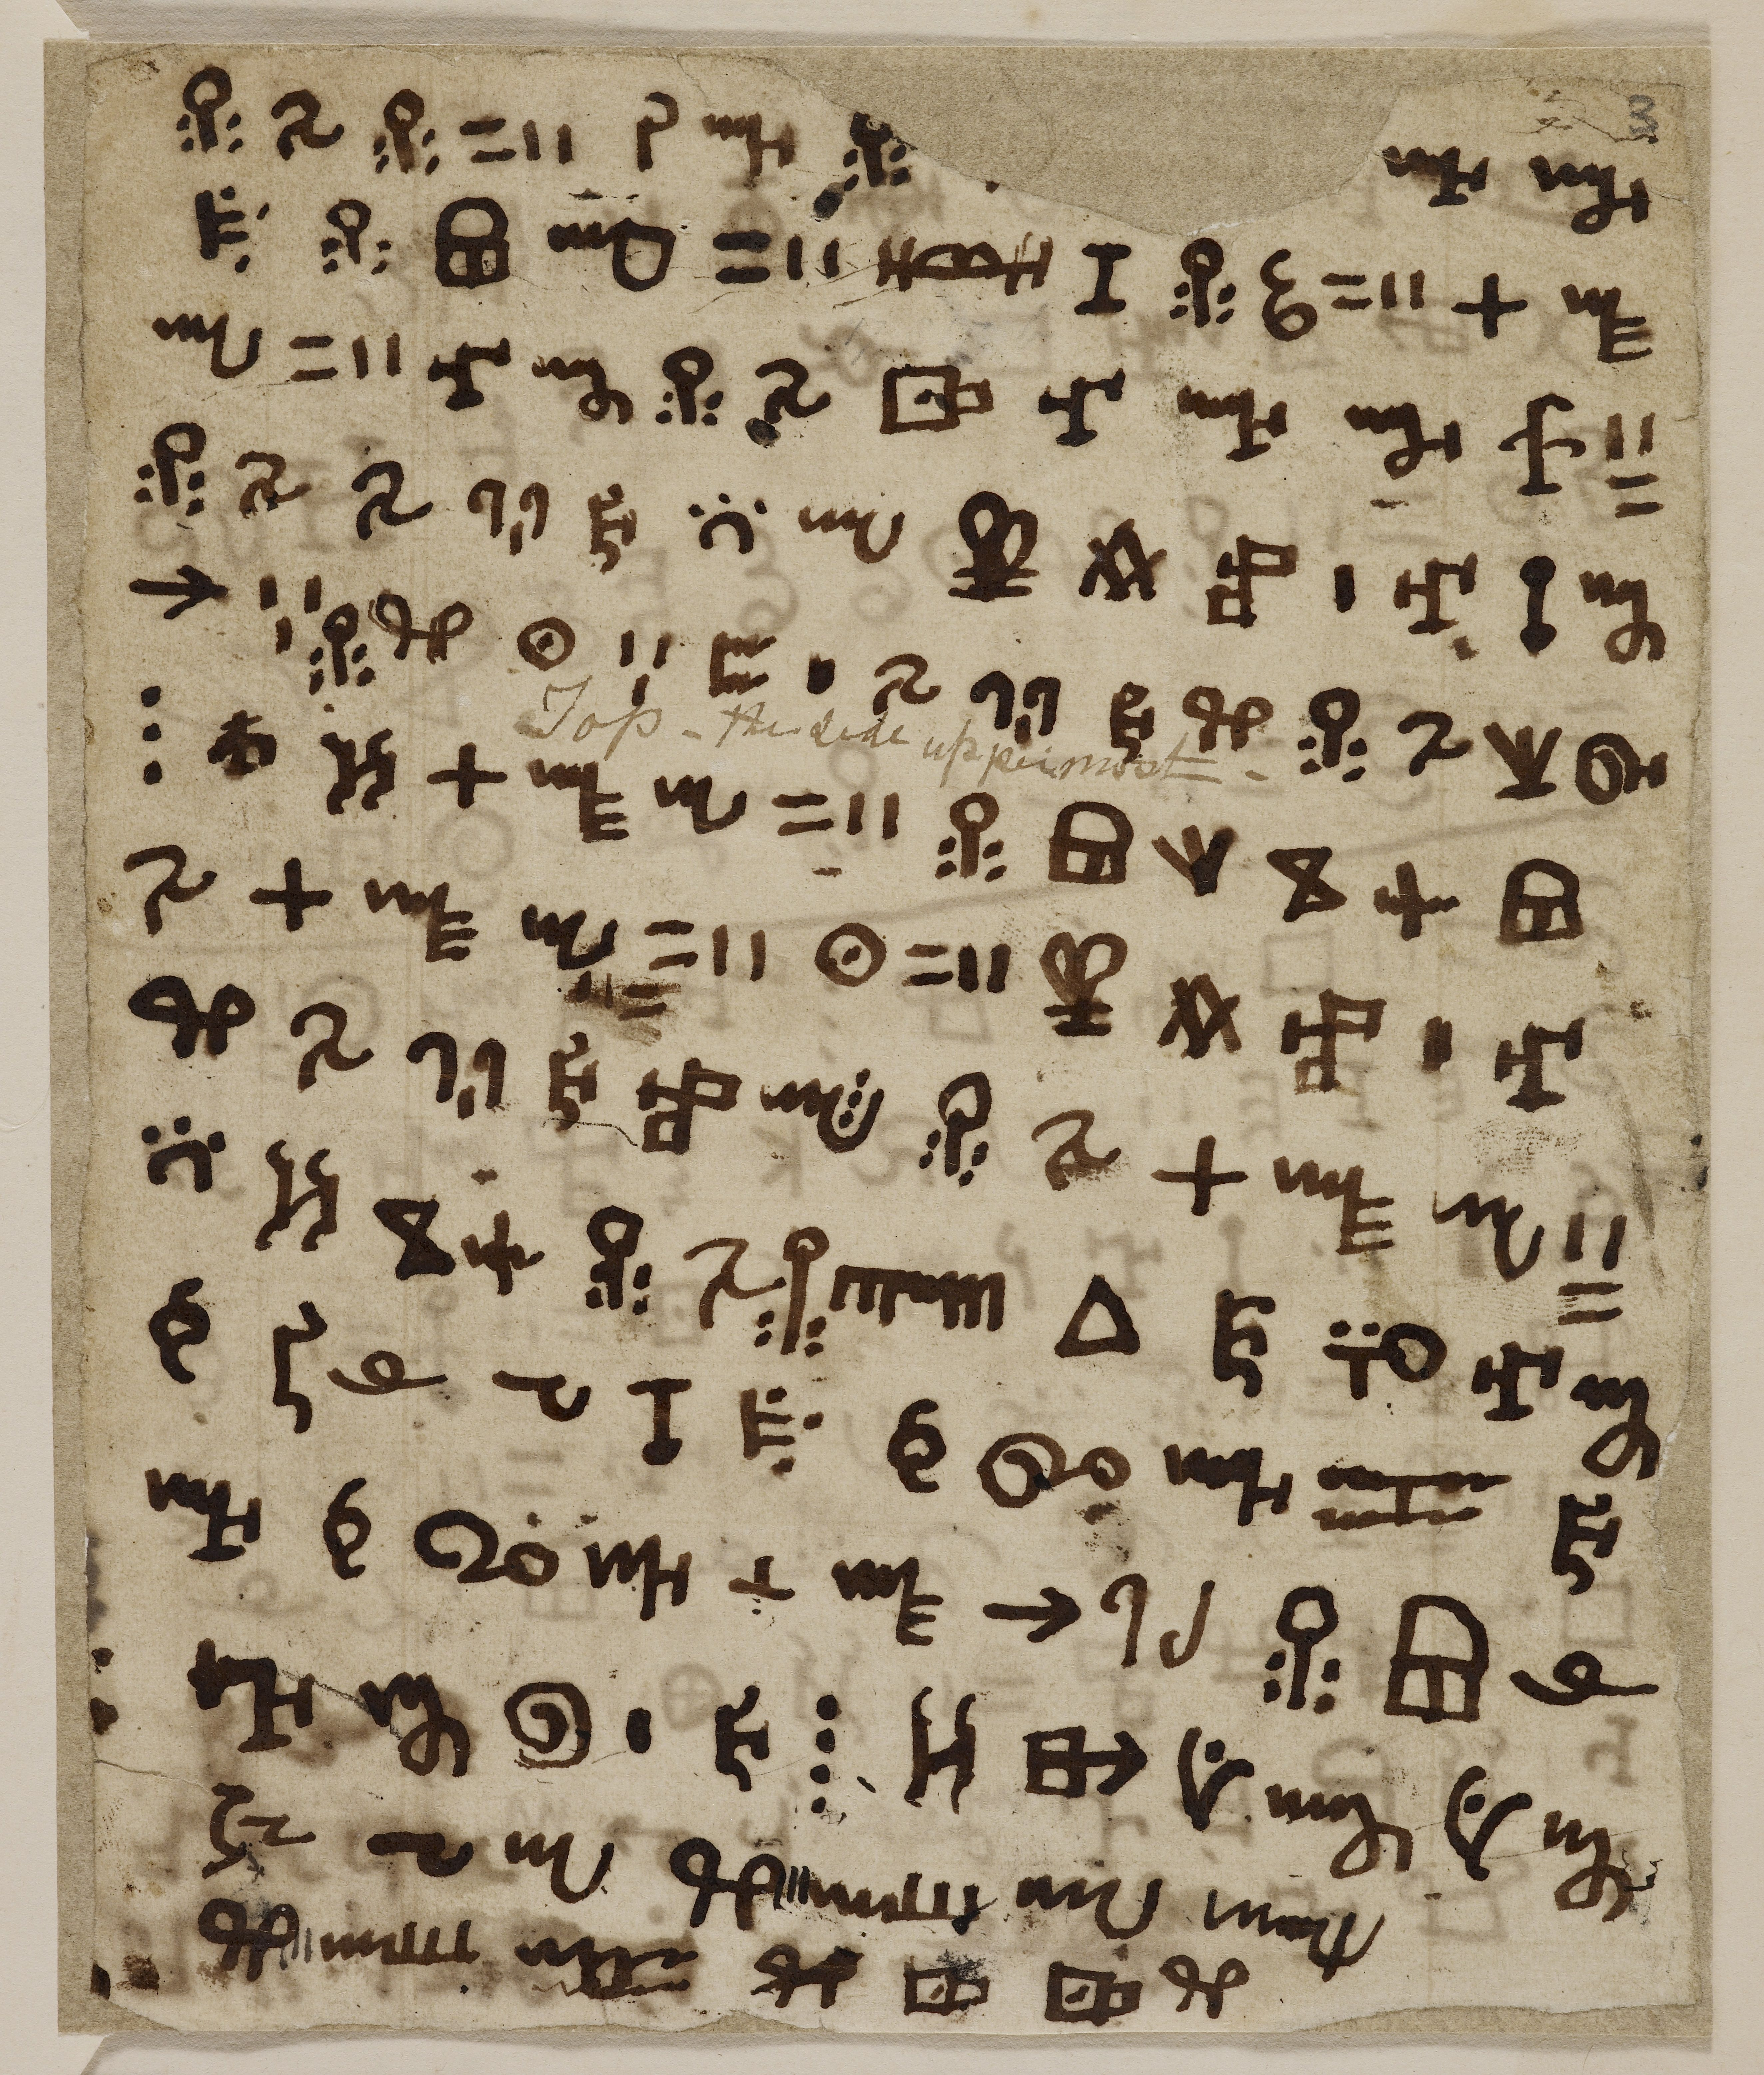 This document is written in the Vai script of Liberia, invented in the early 19th century. This manuscript features in the British Library's 'West Africa: Word, Symbol, Song' exhibition